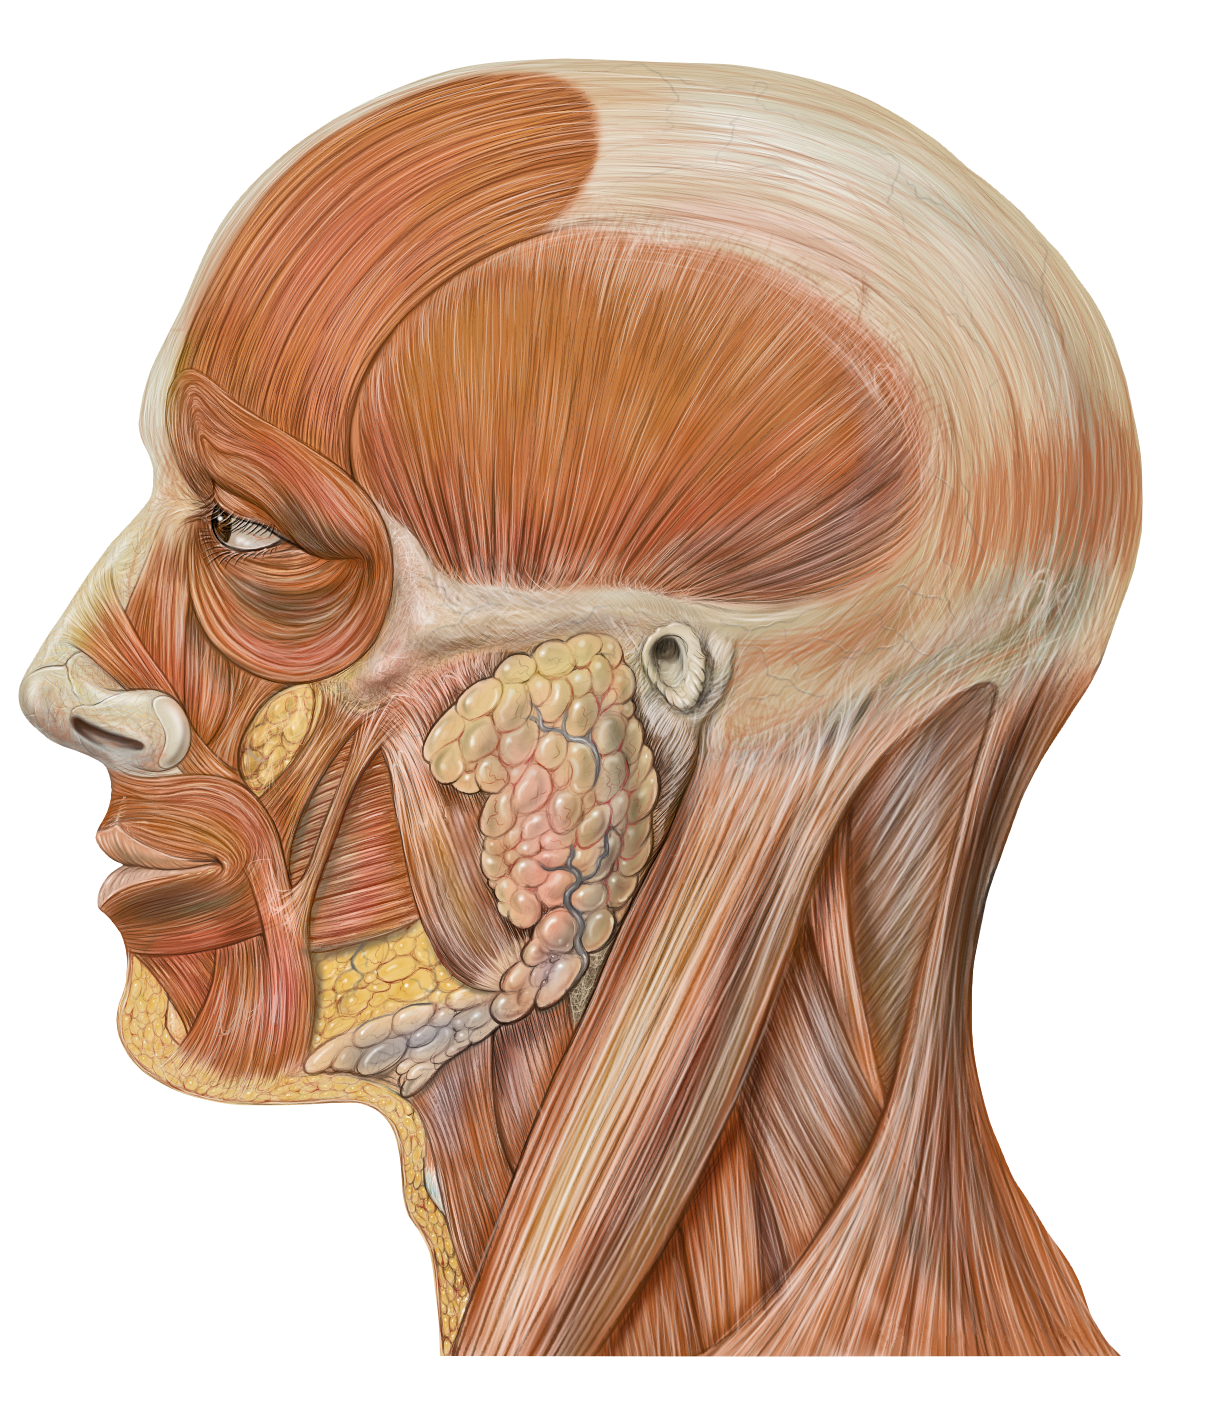 File:Lateral head anatomy.png.